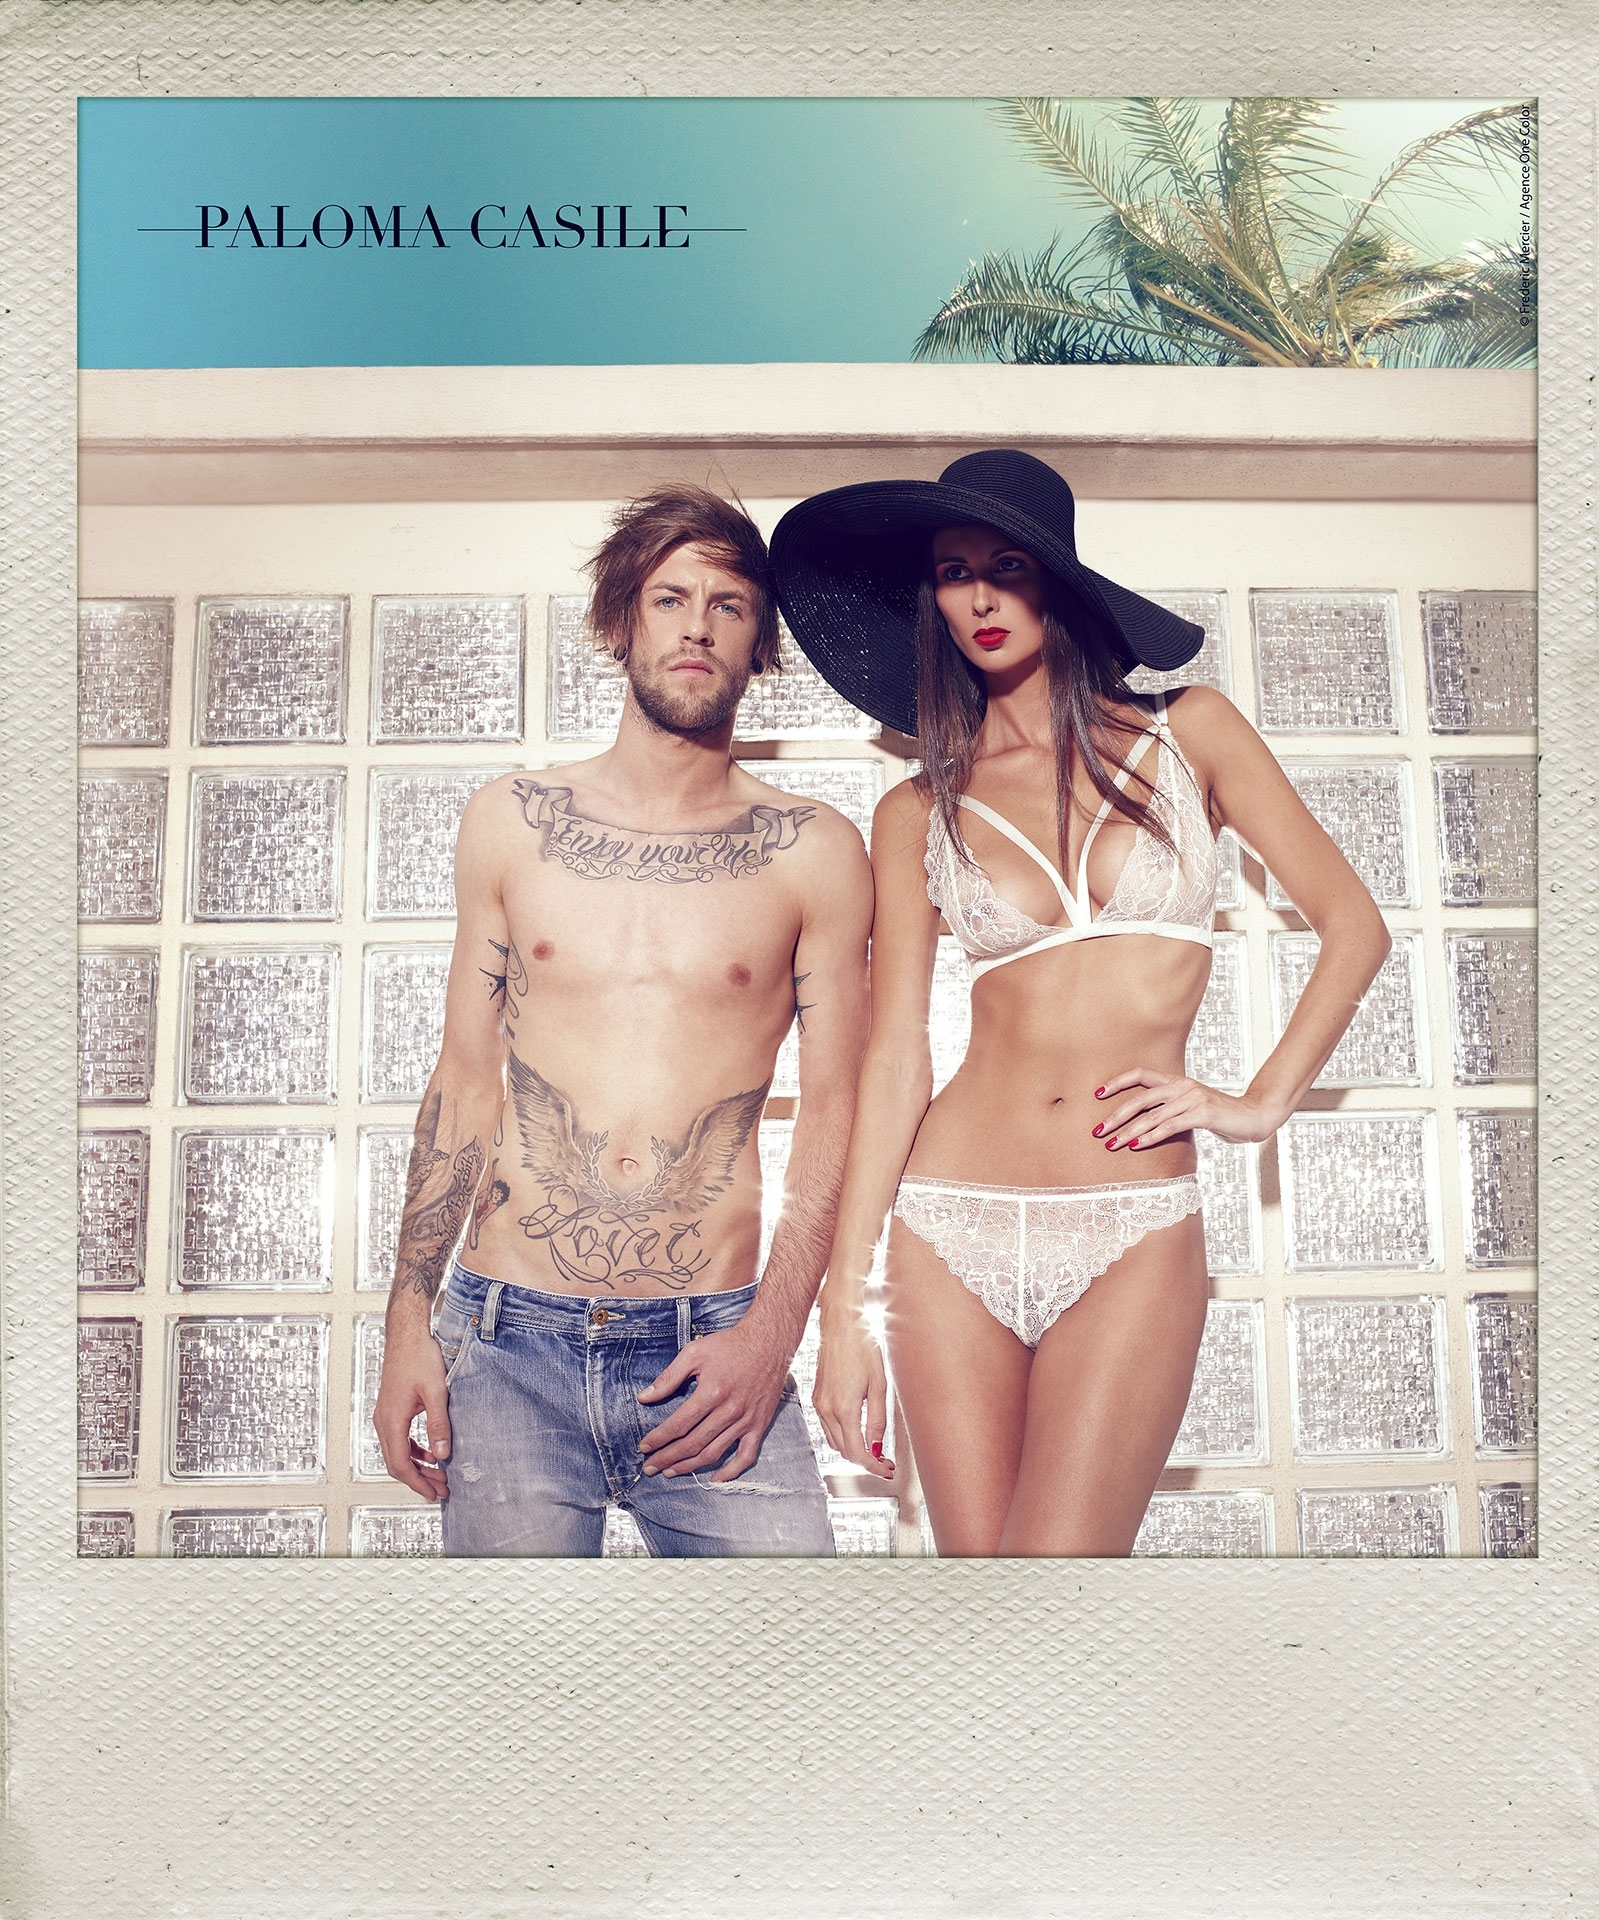 paloma casile ss 2014 campaign lingerie underwear frederic mercier fashion photographer one color